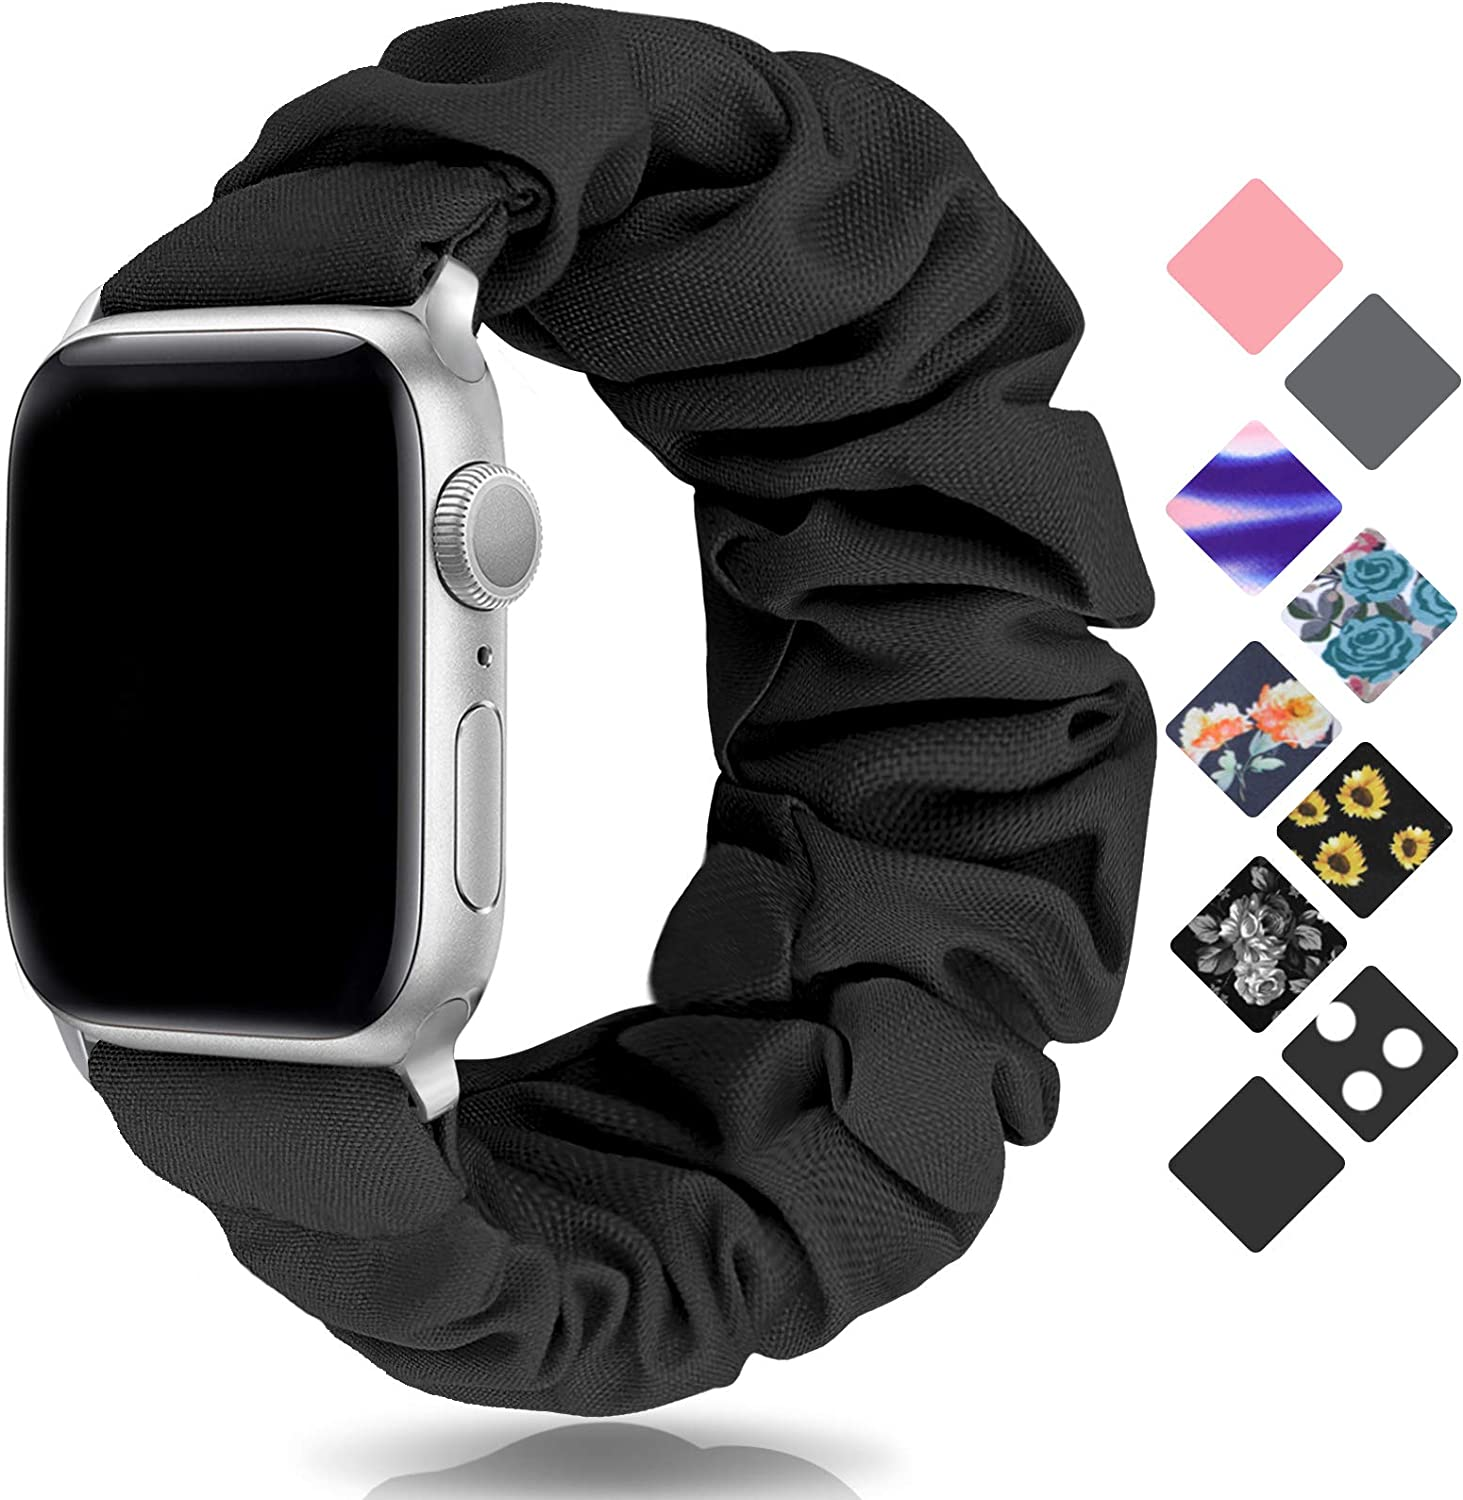 SAMYERLEN Compatible with Scrunchie Apple Watch Band 38mm 40mm 42mm 44mm, Women Cute Soft Elastic Scrunchy Bands Wristbands Bracelet Strap for Iwatch Series 6/5/4/3/2/1/SE(Black-38/40S)